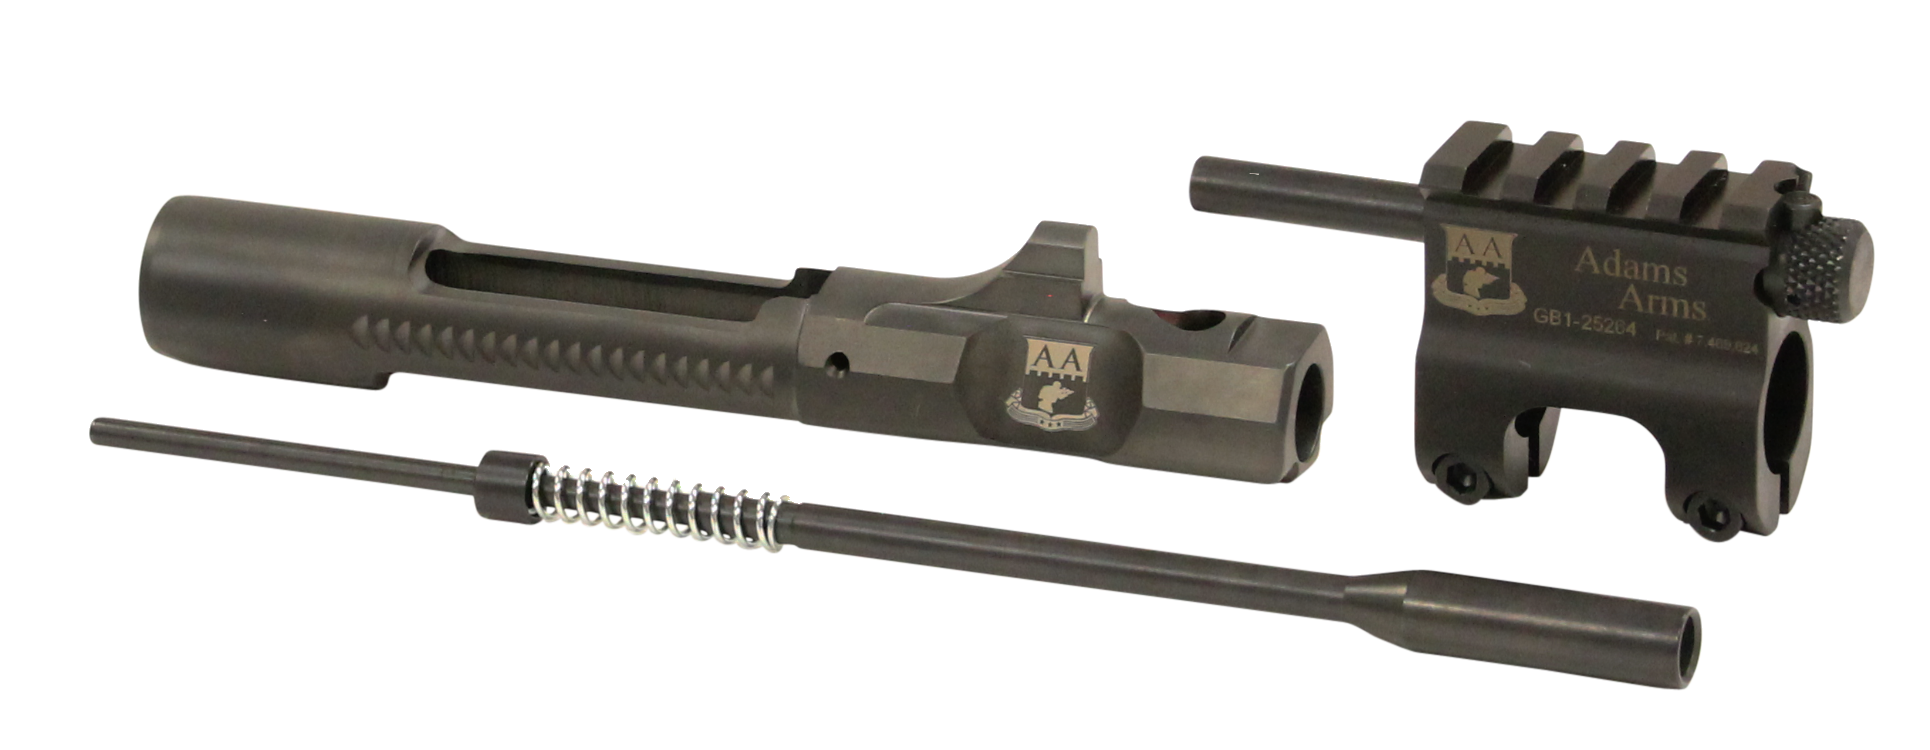 Adams Arms FGAA03107 Standard Carbine Length Piston Kit AR Style 223 Remington/5.56 NATO Steel